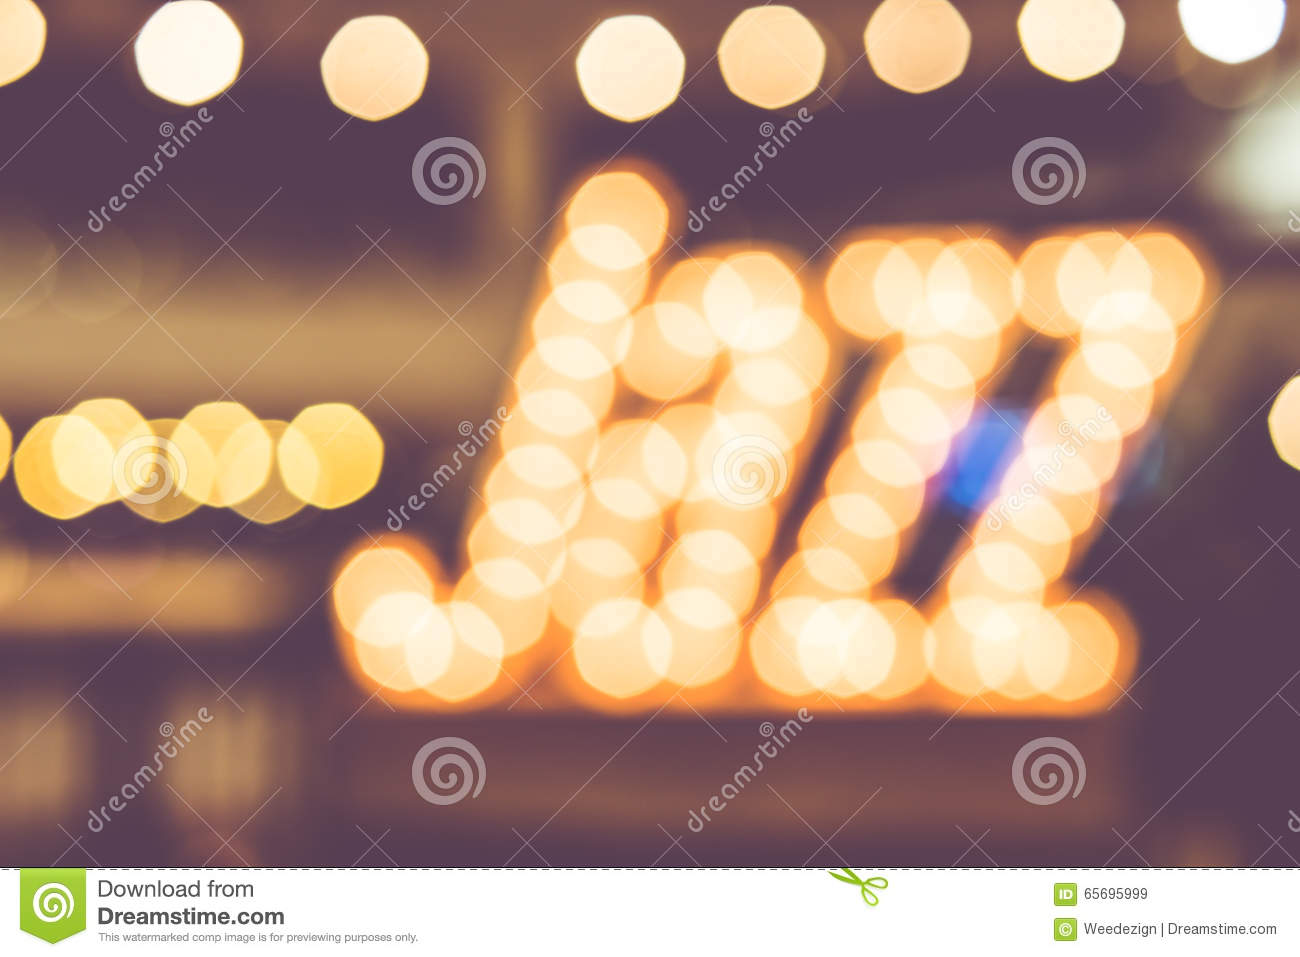 Image Result For Royalty Free Jazzy Music